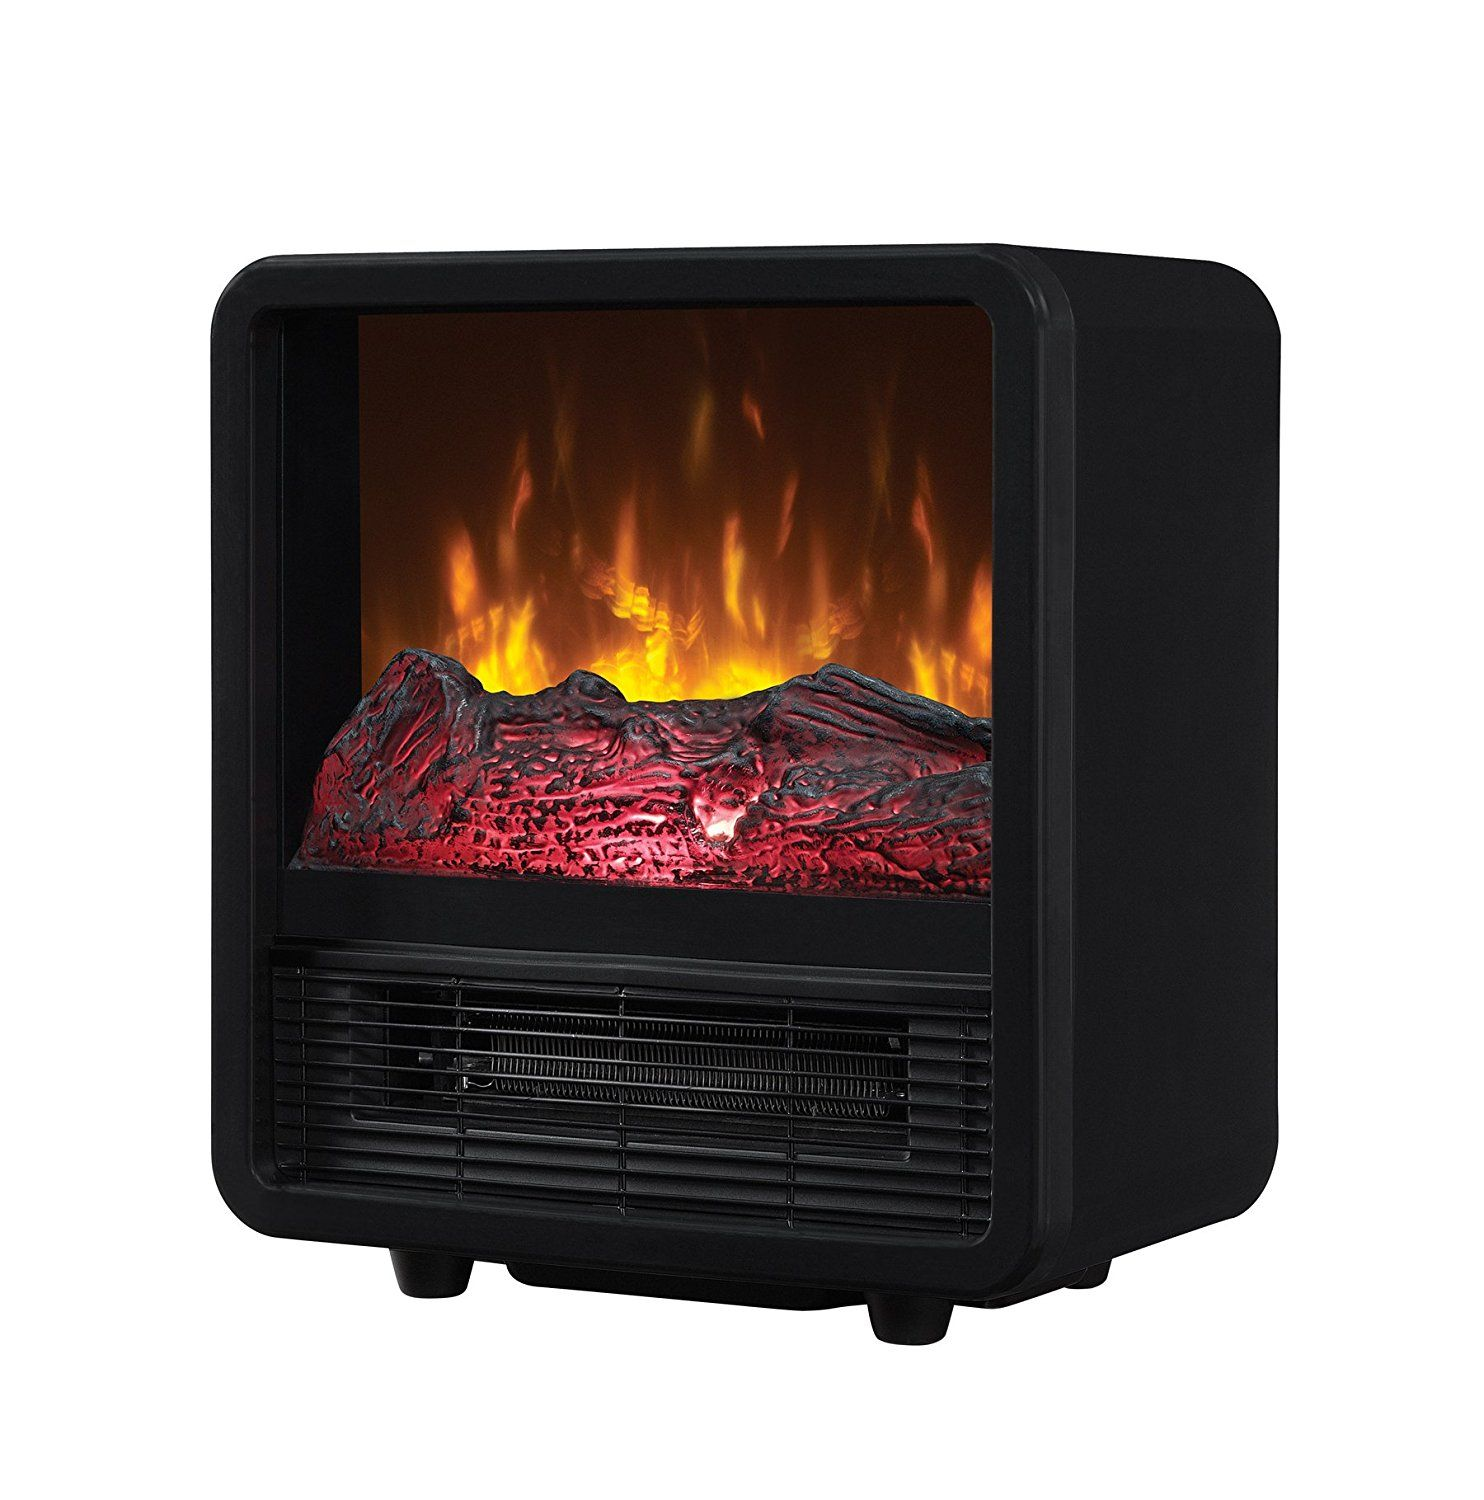 bc3926fefe99fde32c3bd533ebfd1c79 Top Result 50 Awesome Corner Electric Fireplace Pic 2018 Jdt4